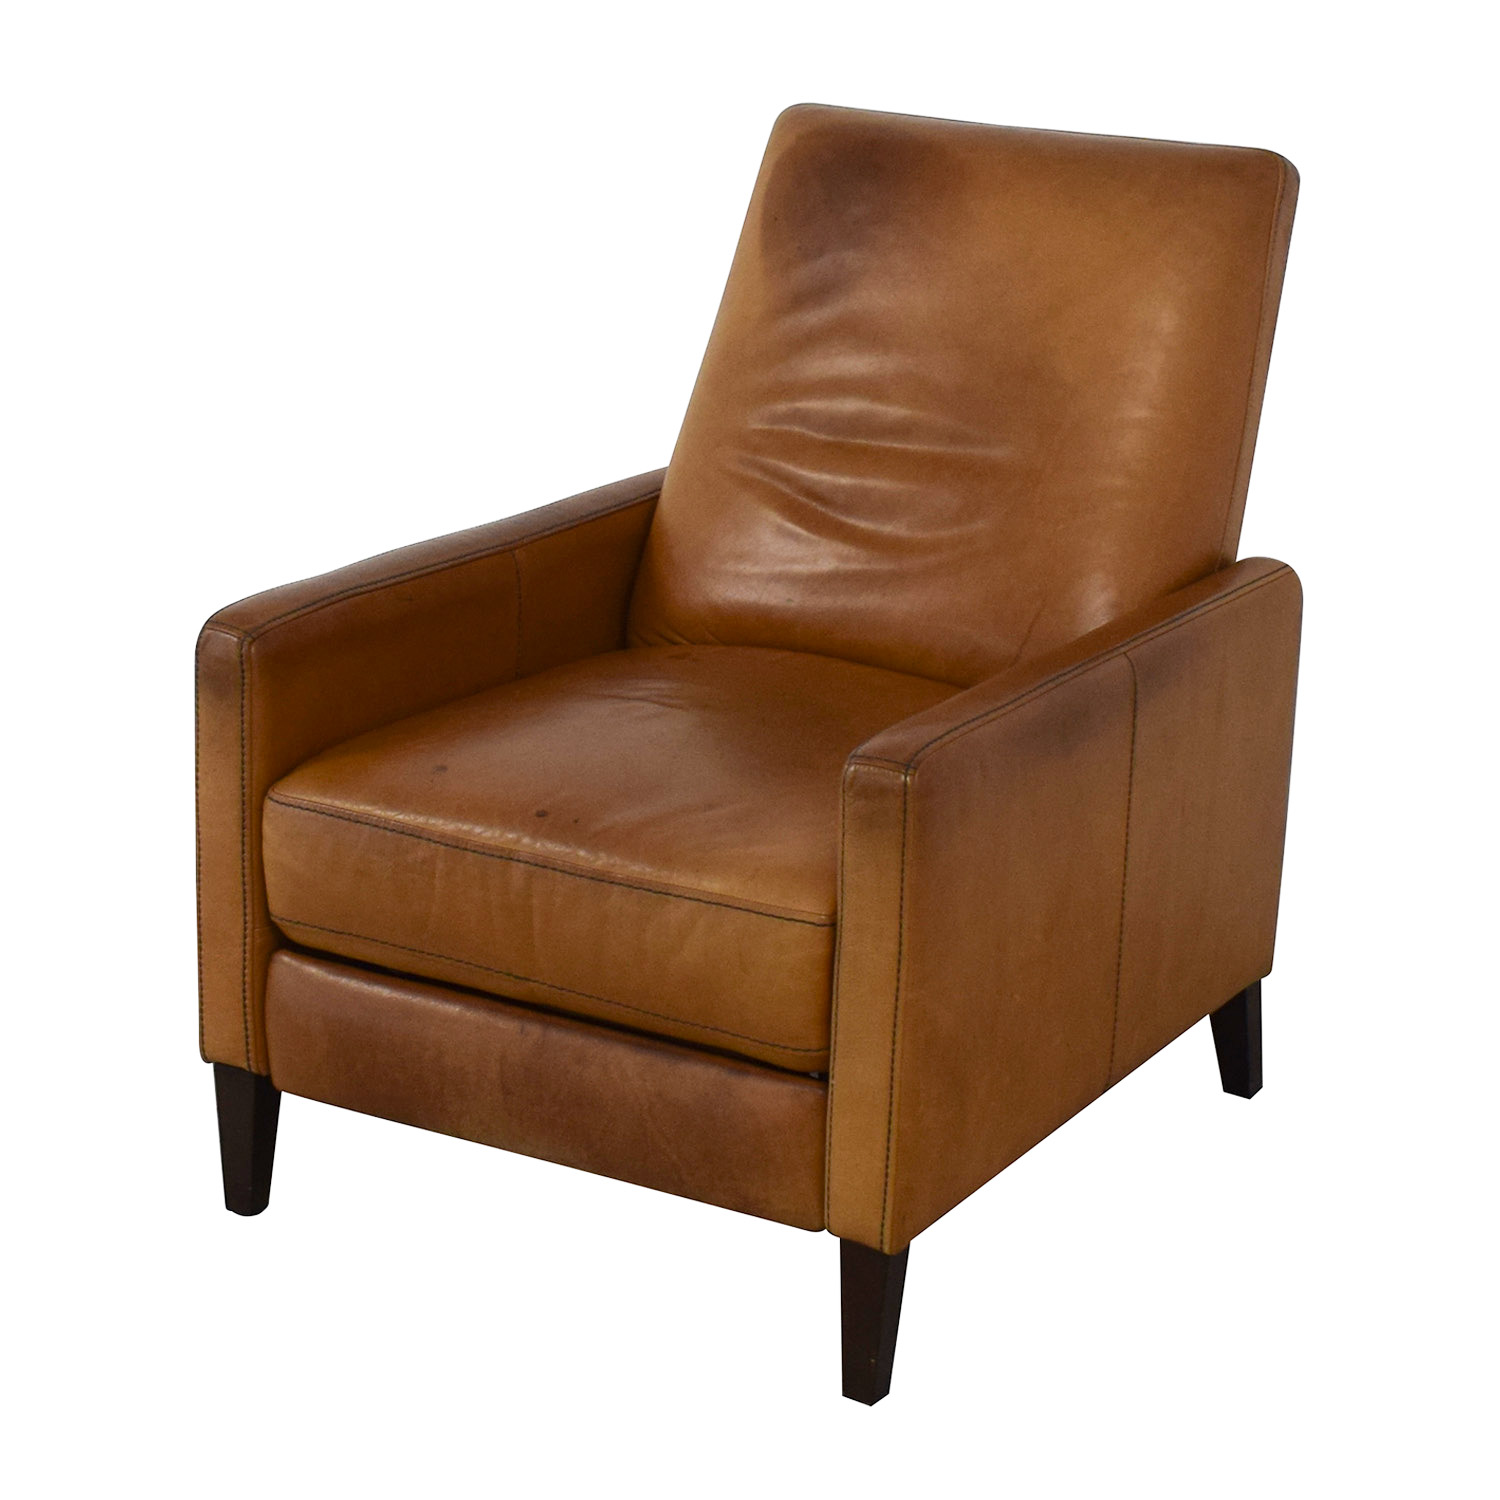 buy West Elm Reclining chair West Elm Chairs